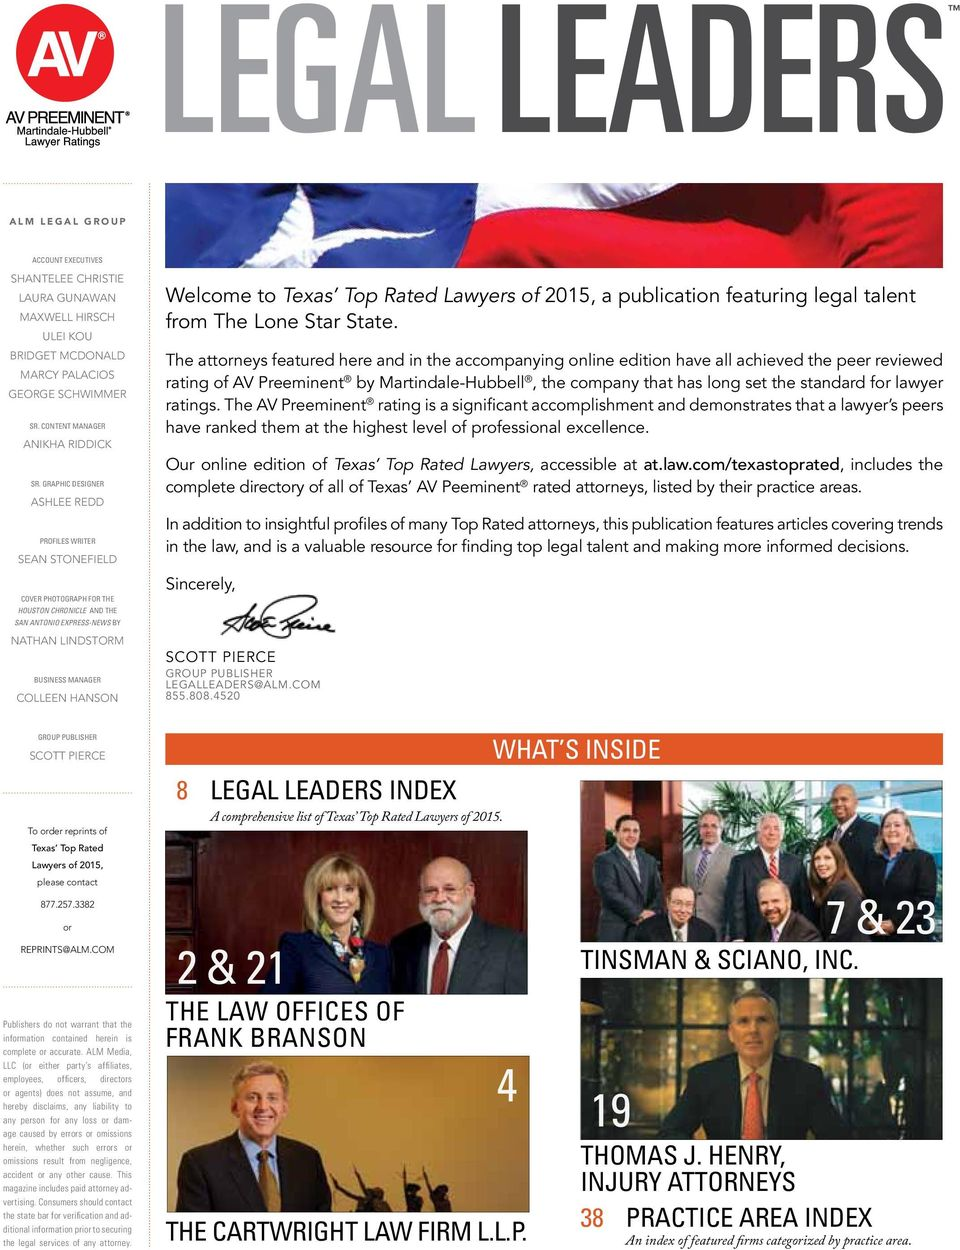 Texas Top Rated yers of 2015, a publication featuring legal talent from The Lone Star State.